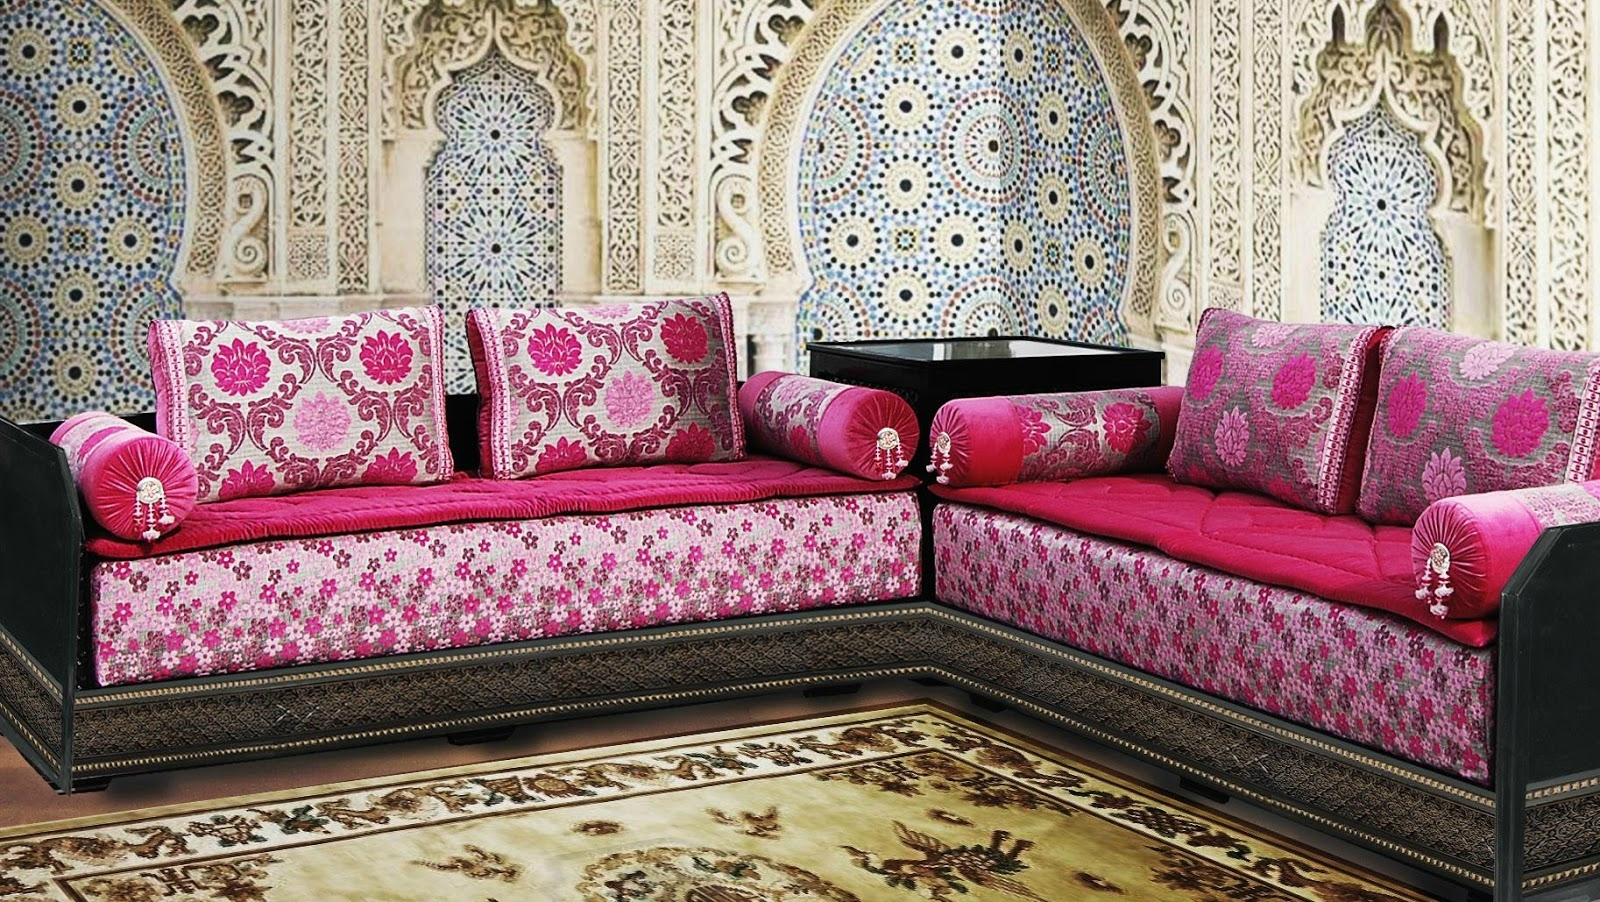 salon marocain design 2017 richbond decoration salon maroc. Black Bedroom Furniture Sets. Home Design Ideas